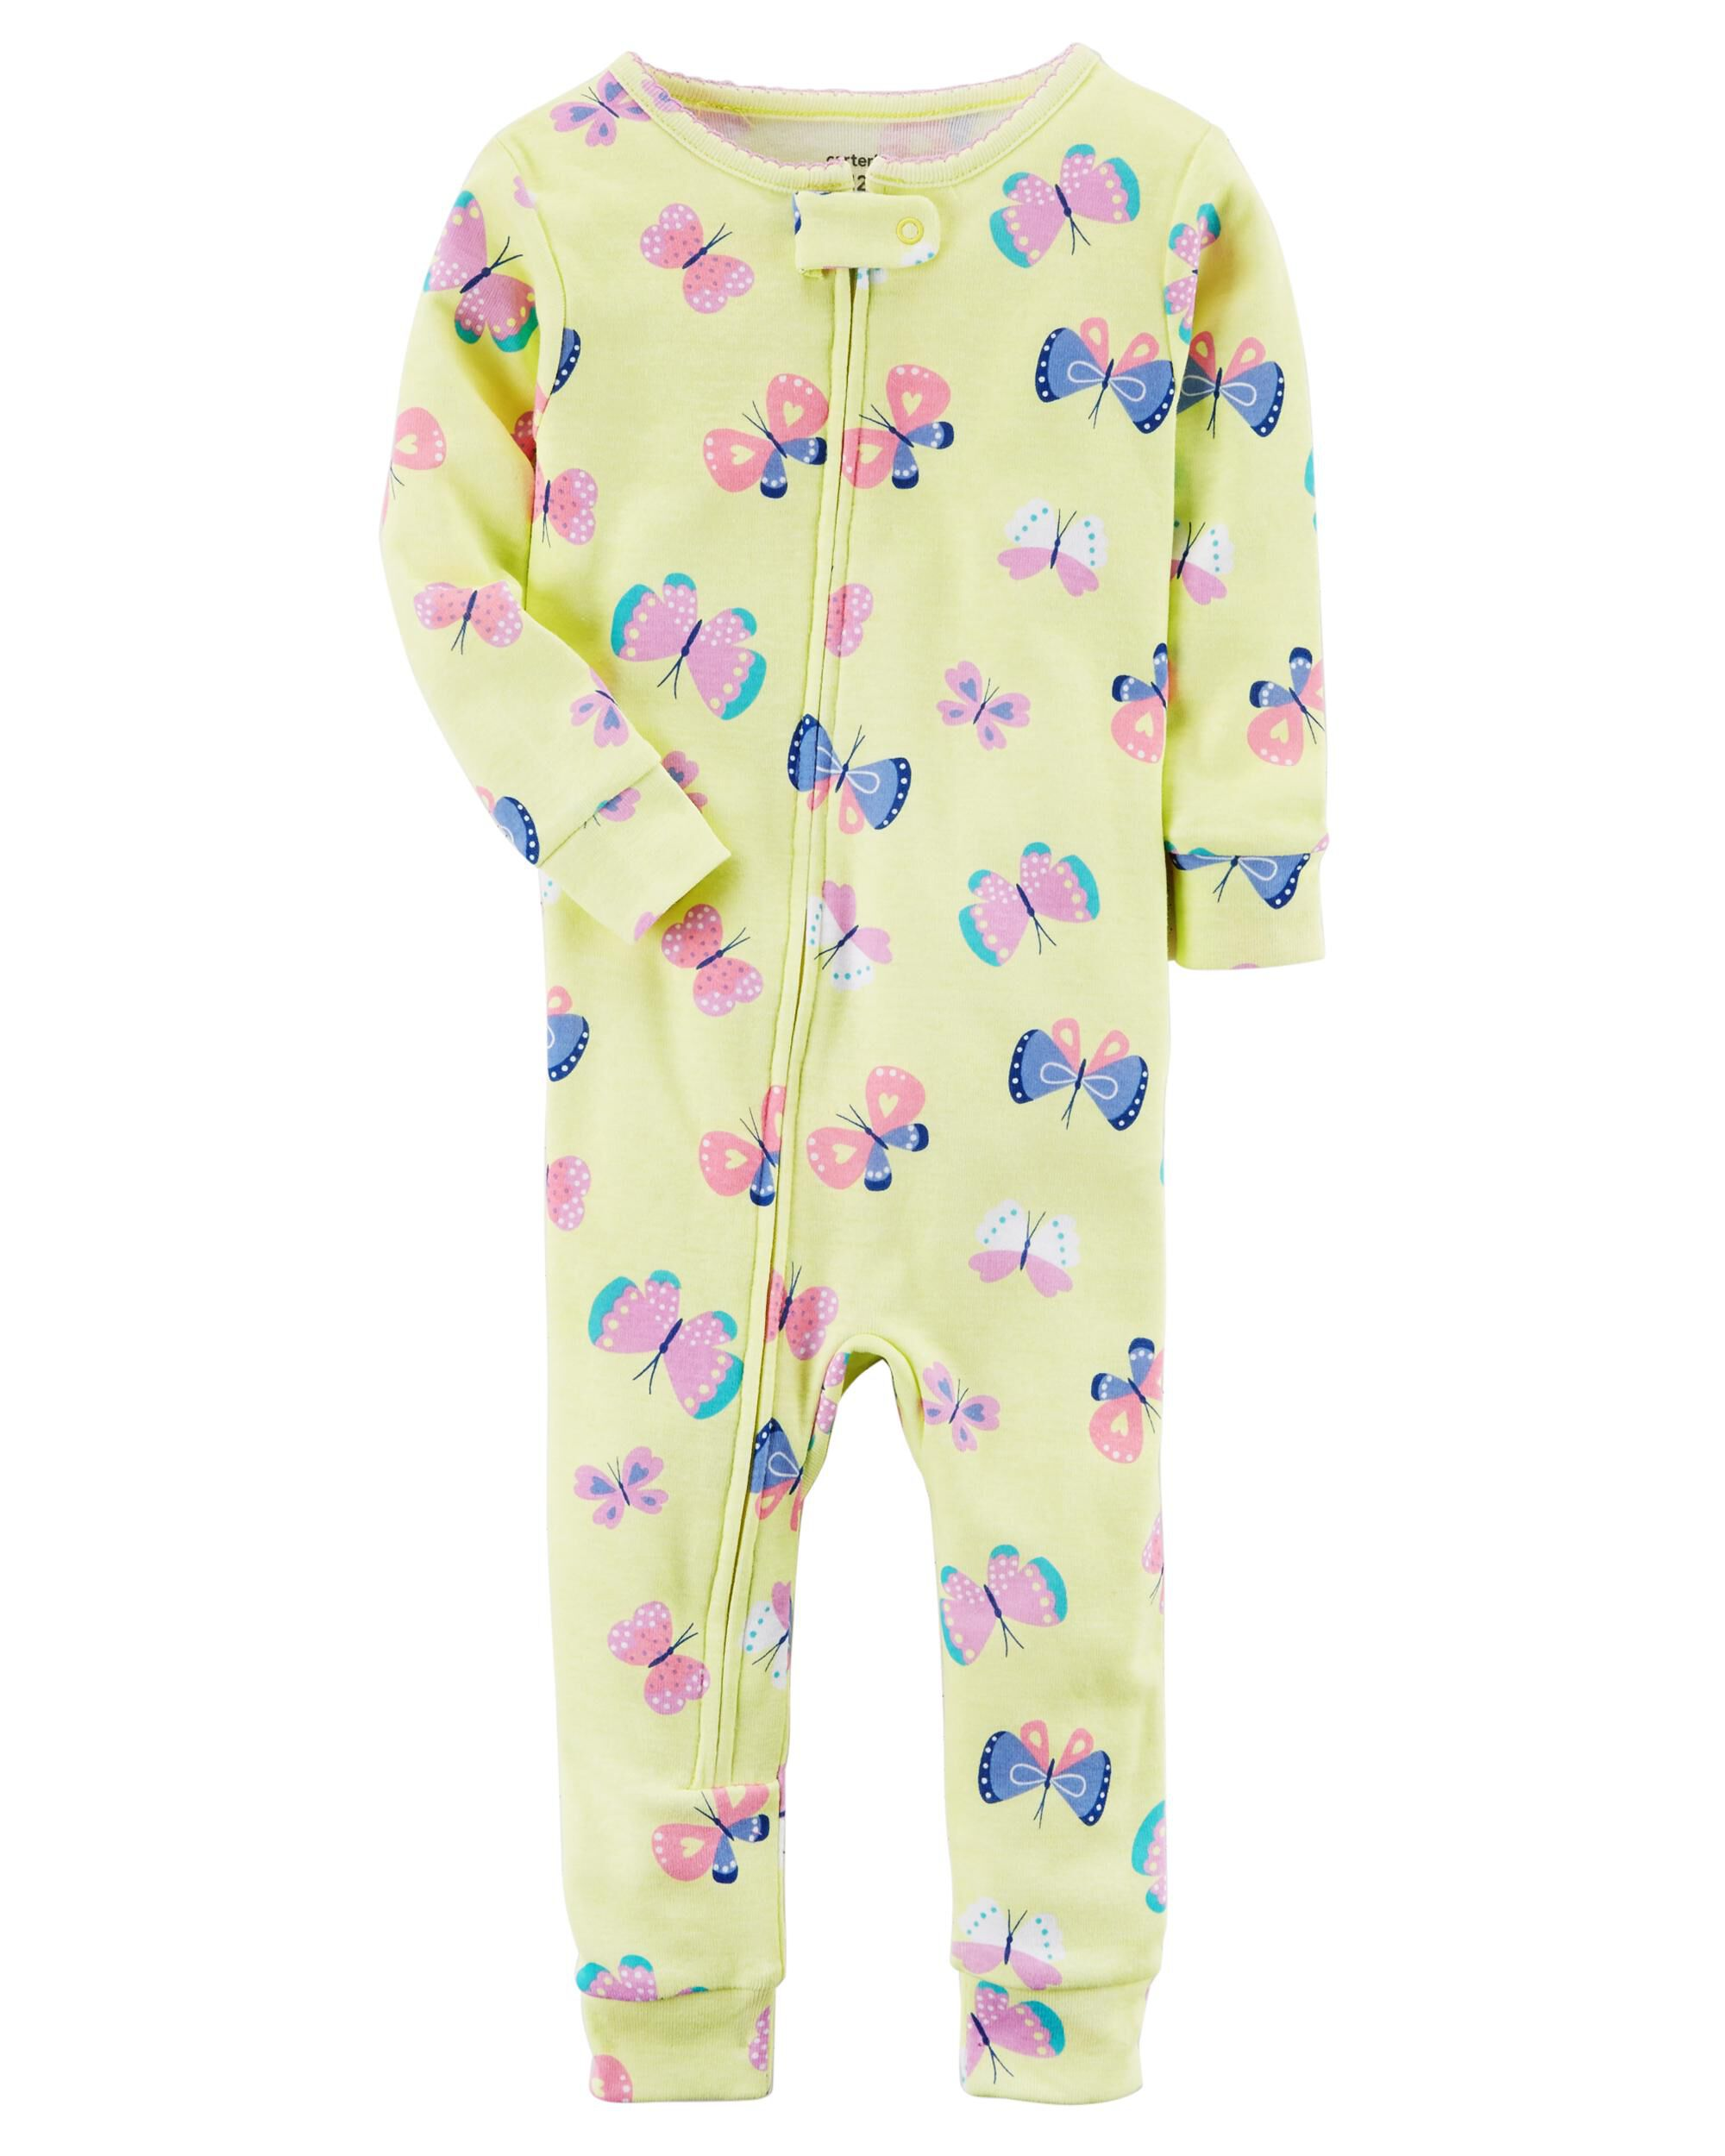 411123bfd2 1-Piece Snug Fit Cotton Footless PJs. Loading zoom